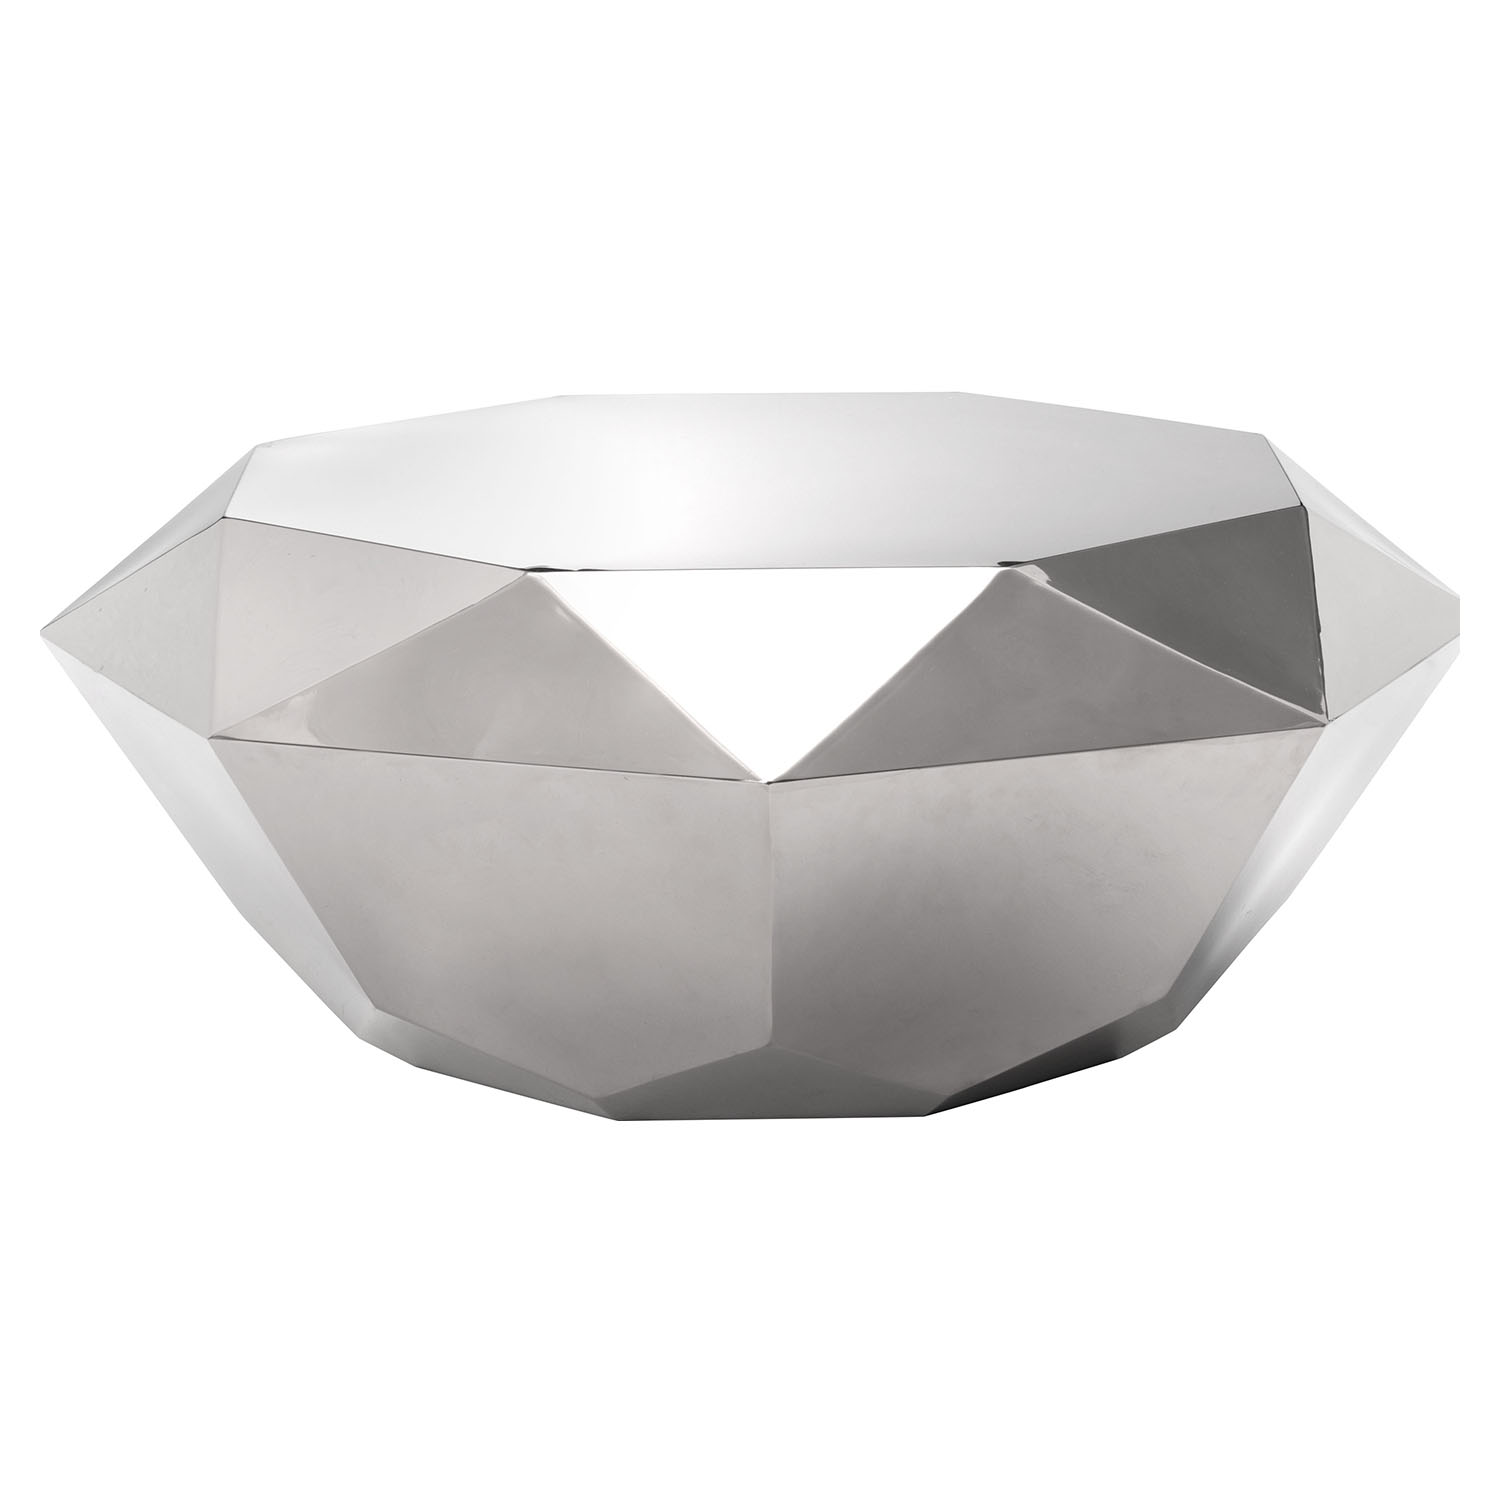 Gem Coffee Table - Stainless Steel - ZM-100344